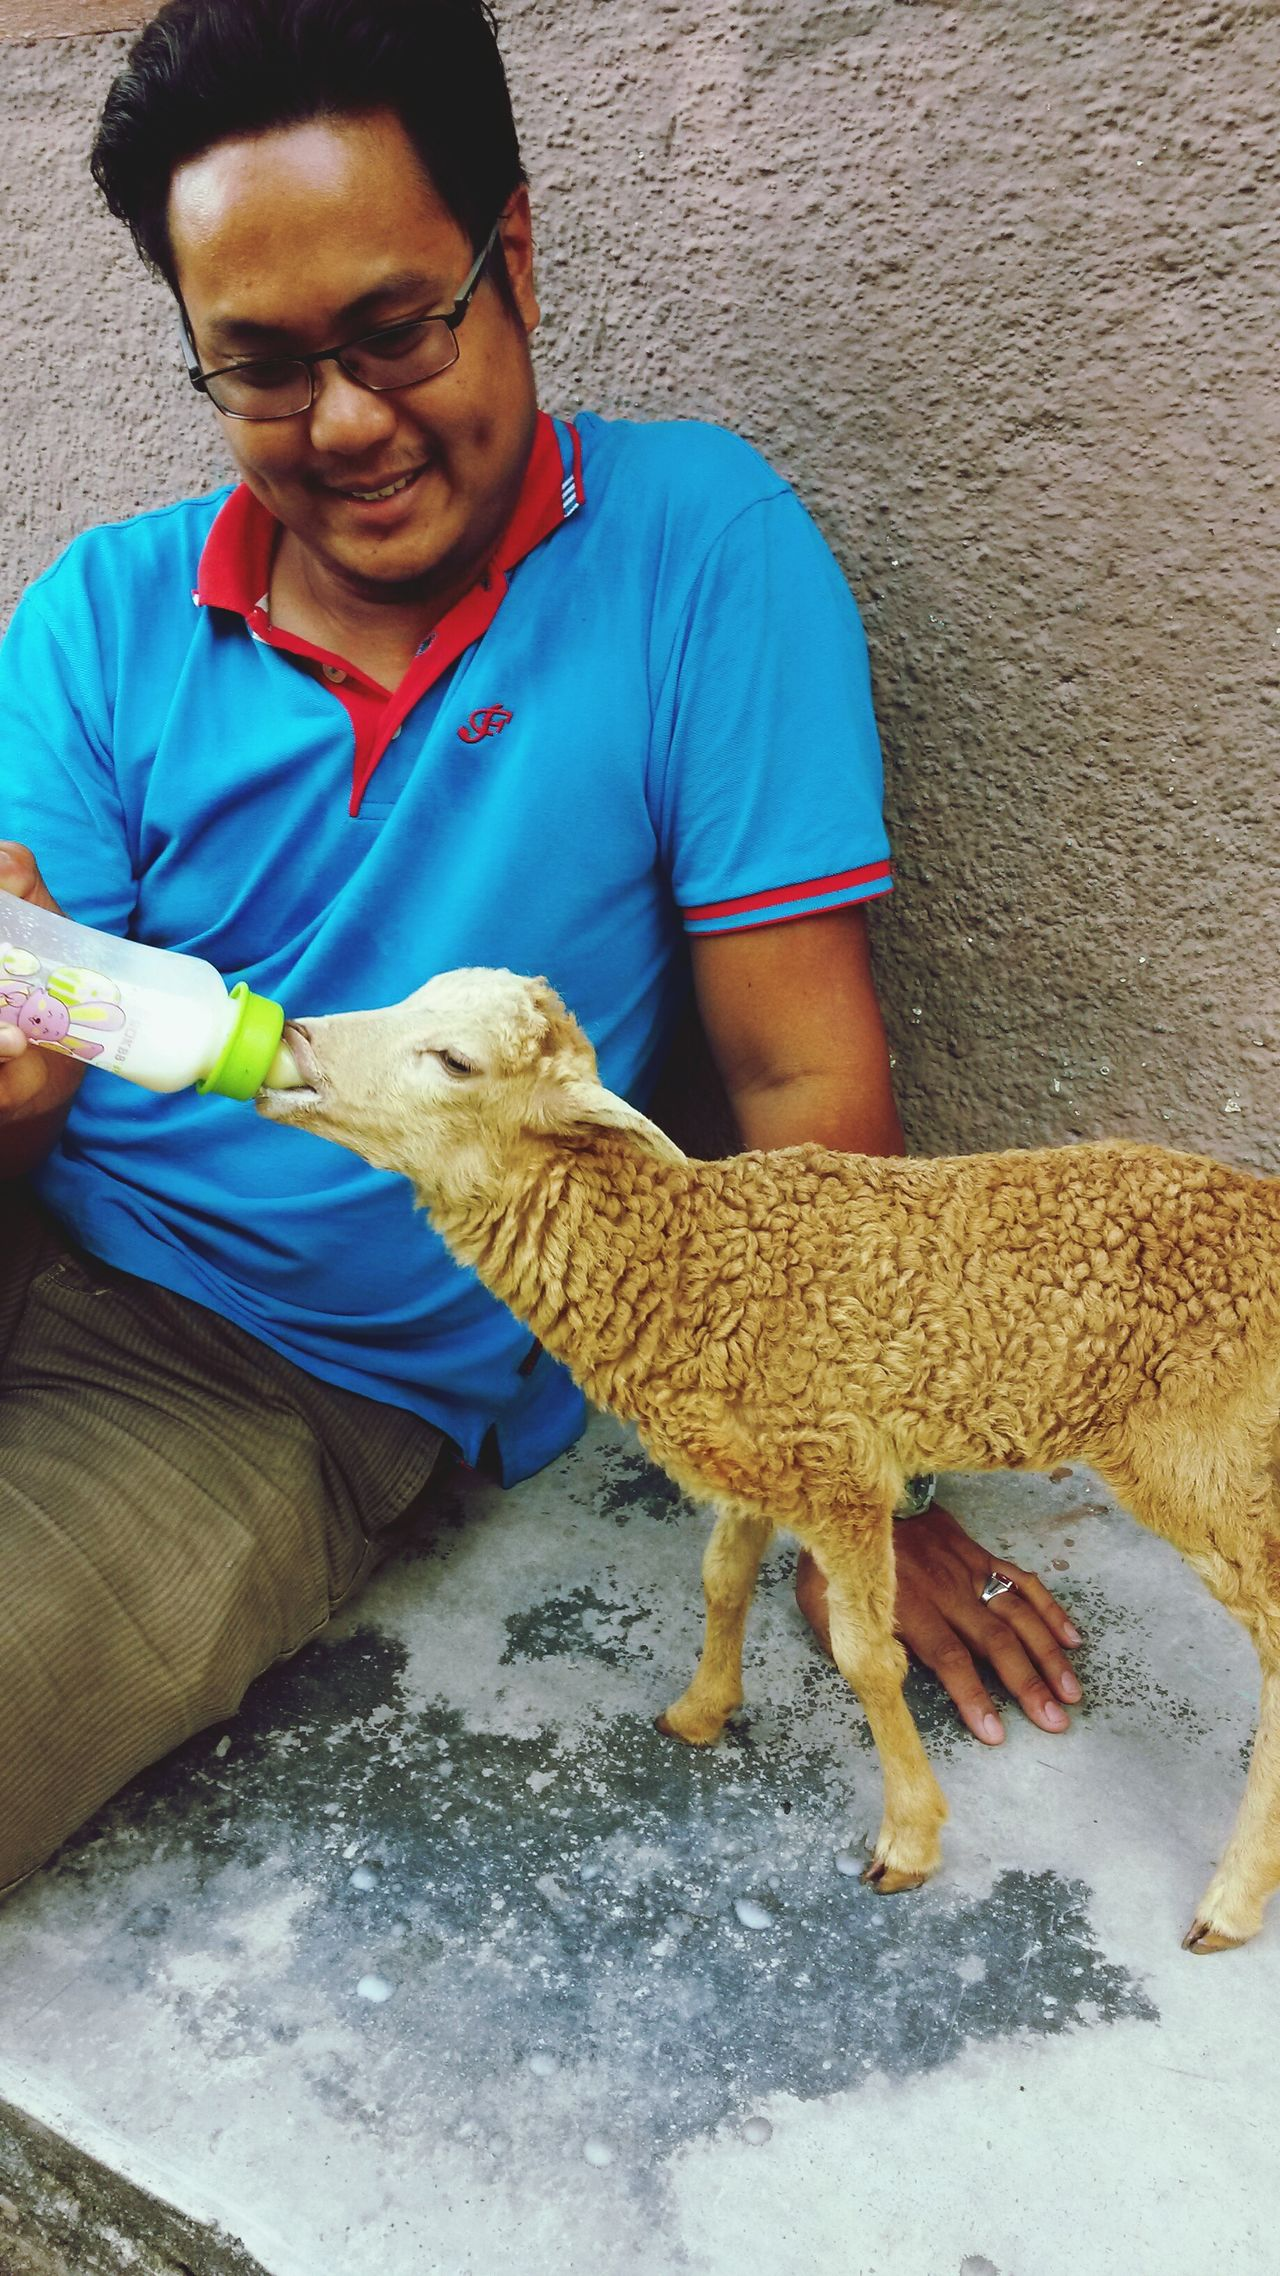 Lactating goats milk fresh kid sheep One Animal One Person Domestic Animals Animal Themes Real People Livestock Farmer Mammal Pets Occupation One Man Only Agriculture Sheep Adults Only Working Indoors  Day People Only Men Adult Milk Sheep Farm Kid Happy Man